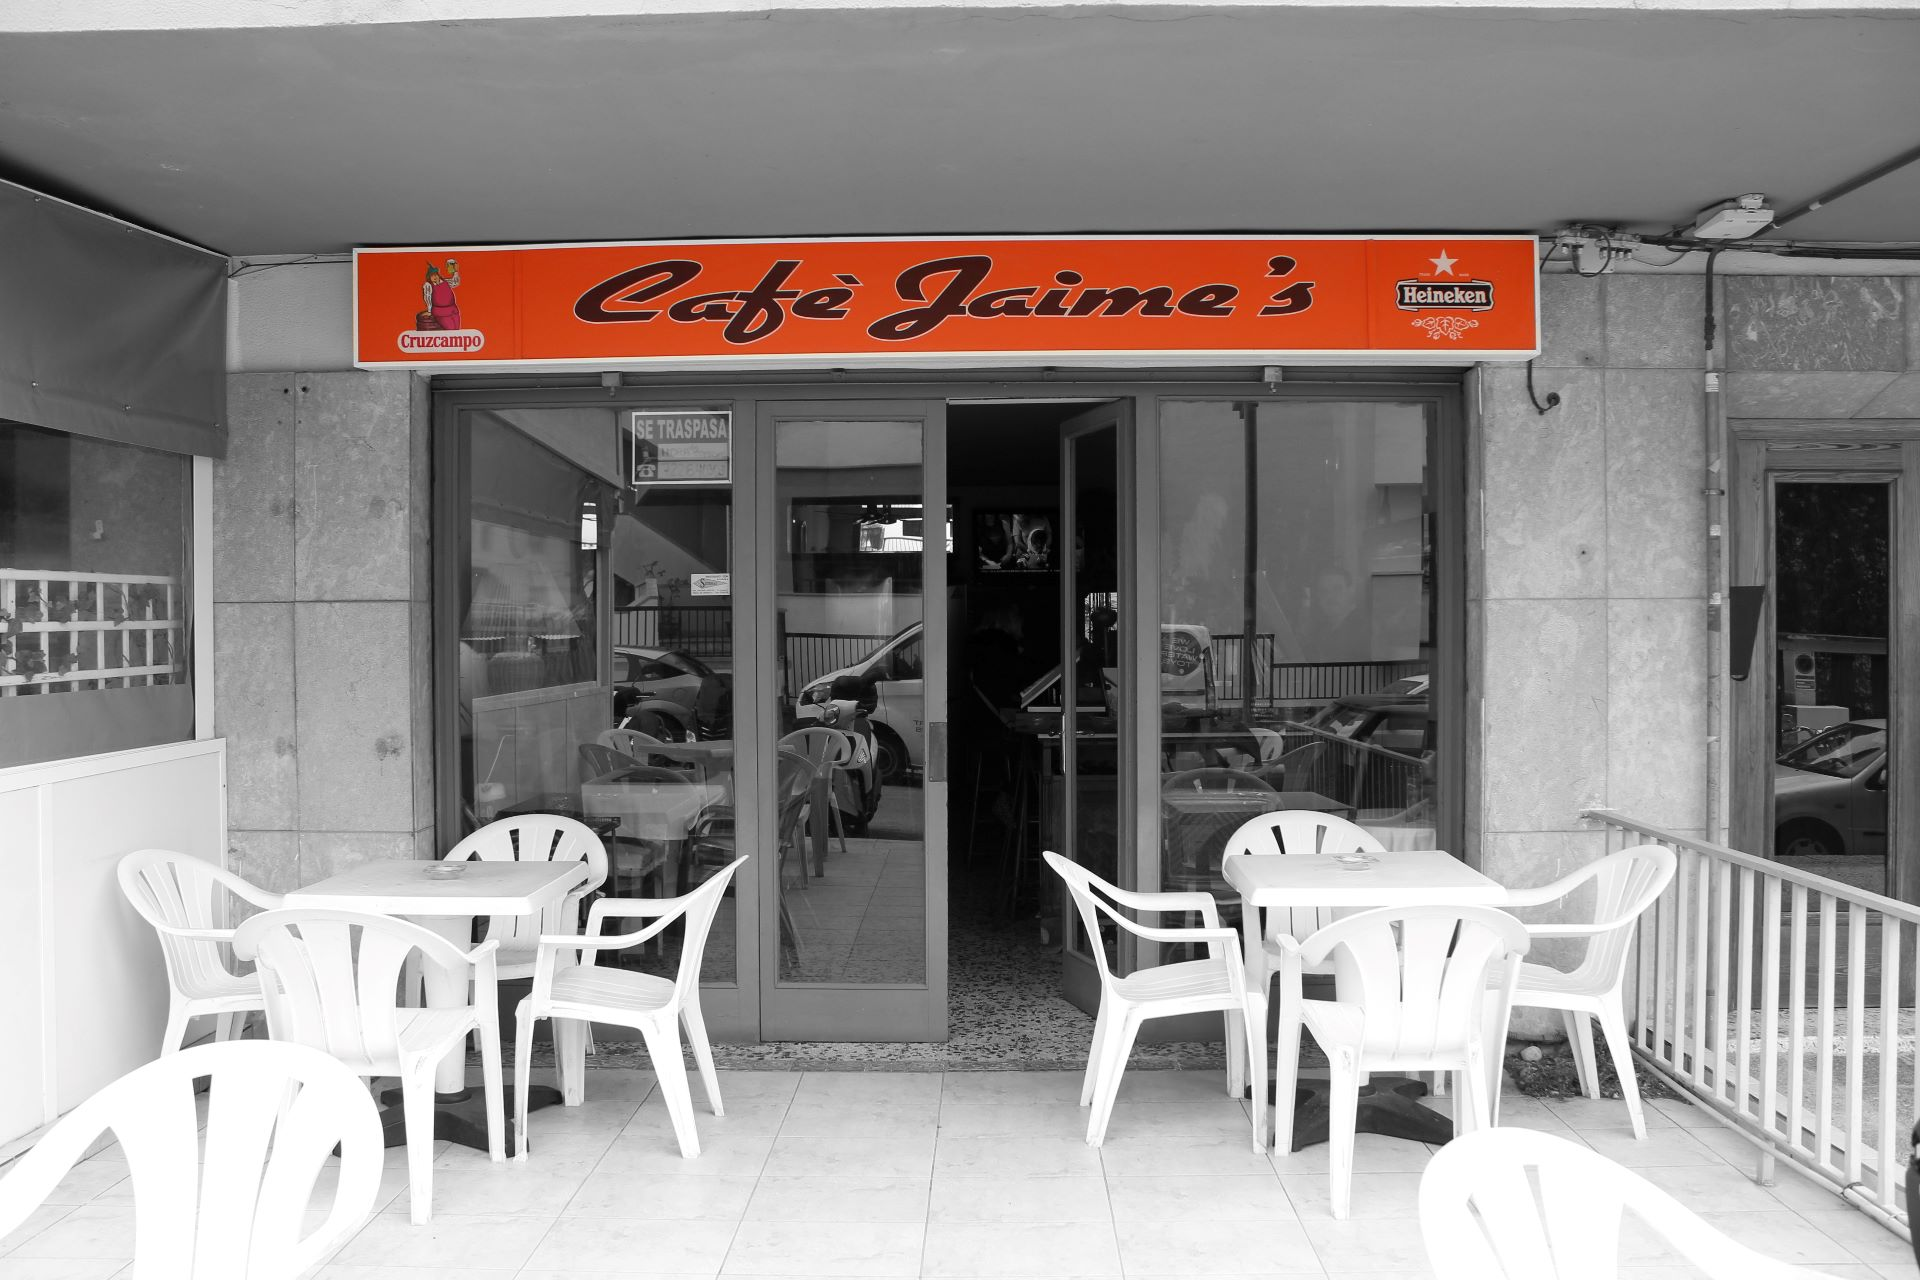 Commercial property in Palma, for sale